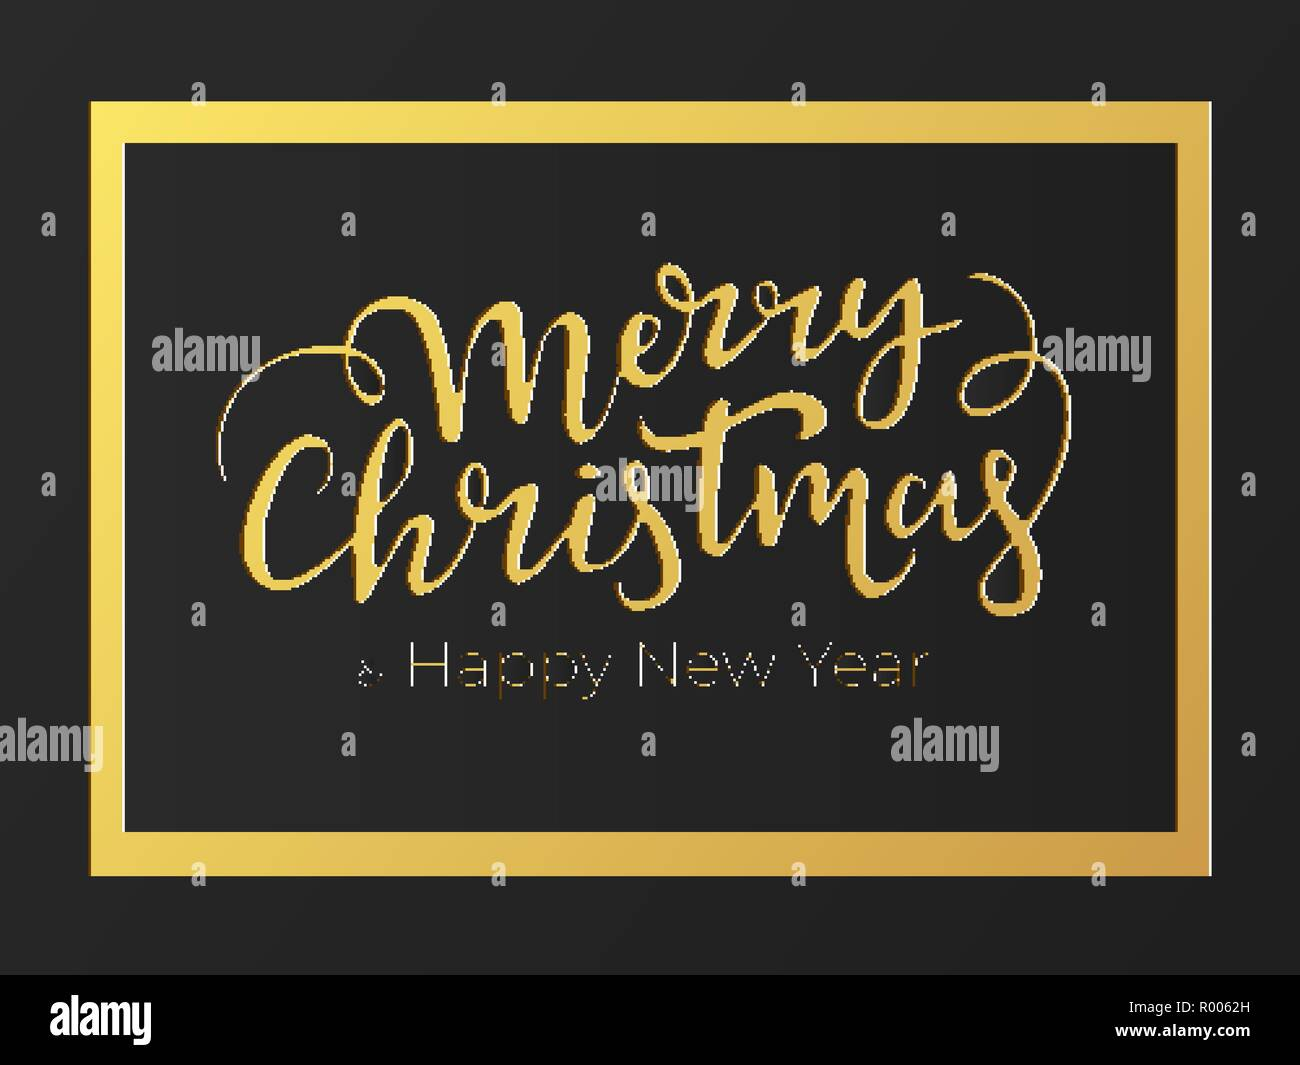 Fashionable typographical festive card design for winter holidays with golden foil and black premium paper background and Merry Christmas and Happy Ne - Stock Image